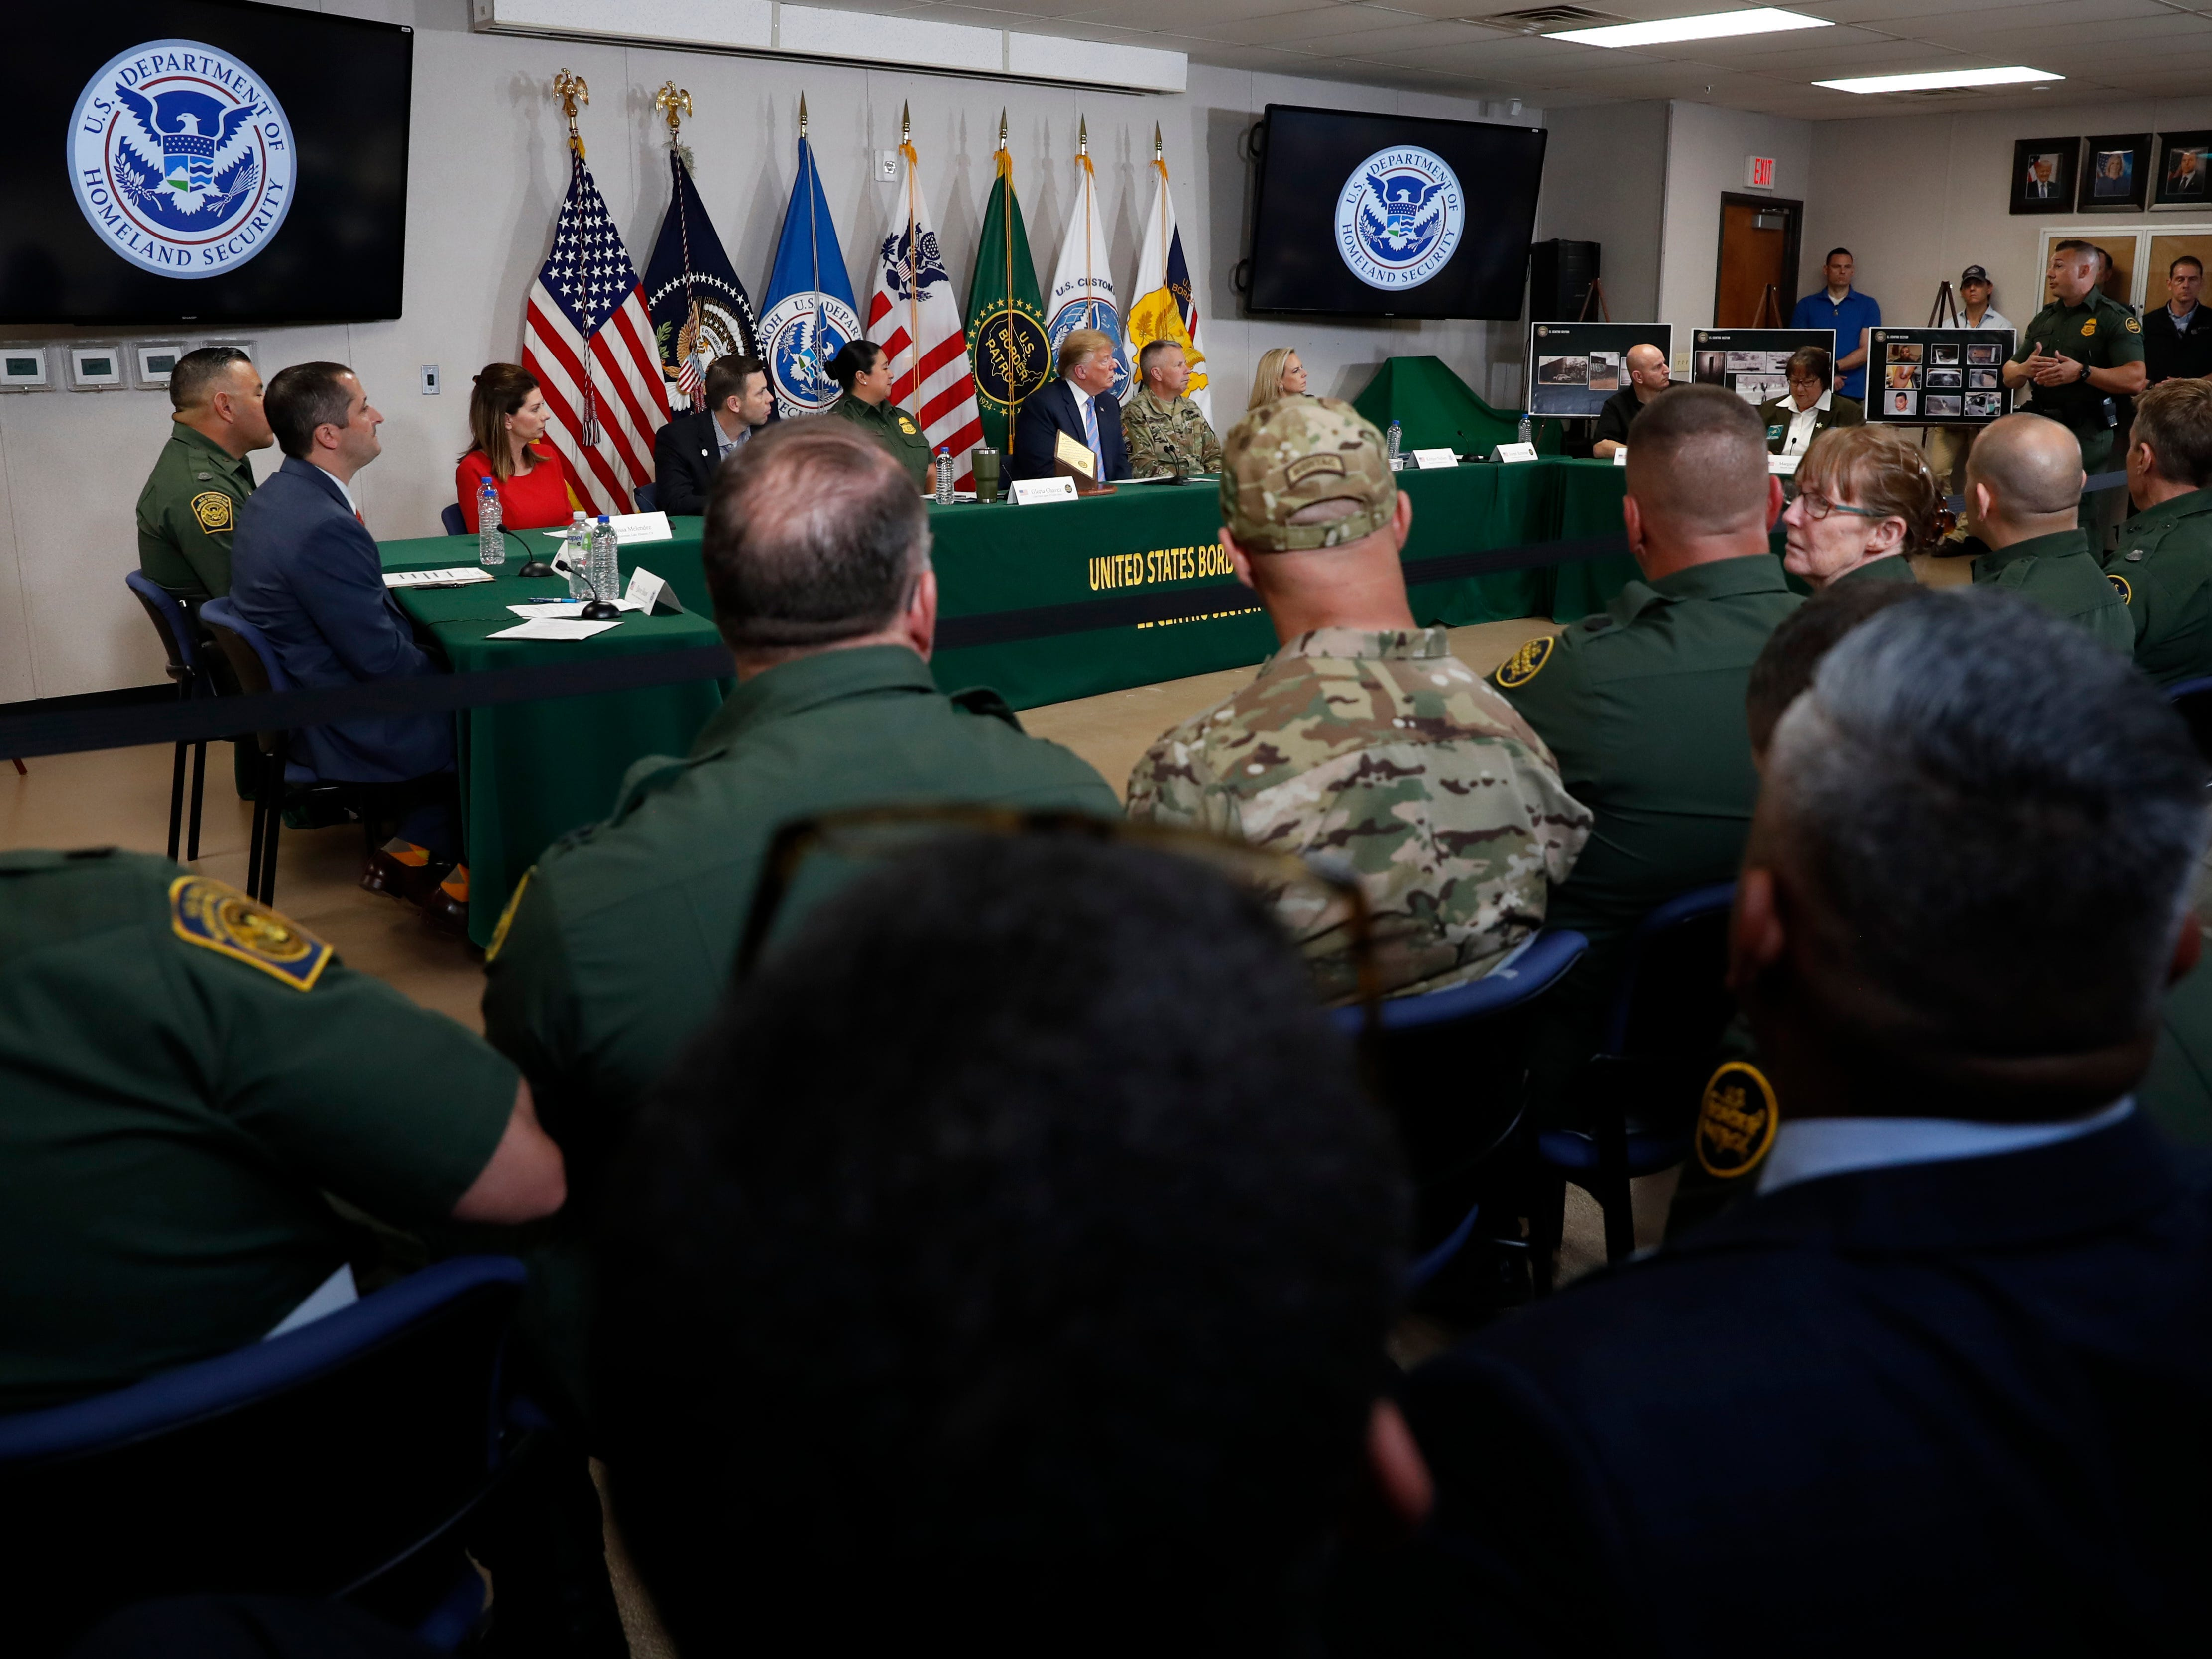 President Donald Trump participates in a roundtable on immigration and border security at the U.S. Border Patrol Calexico Station in Calexico, California, April 5, 2019.